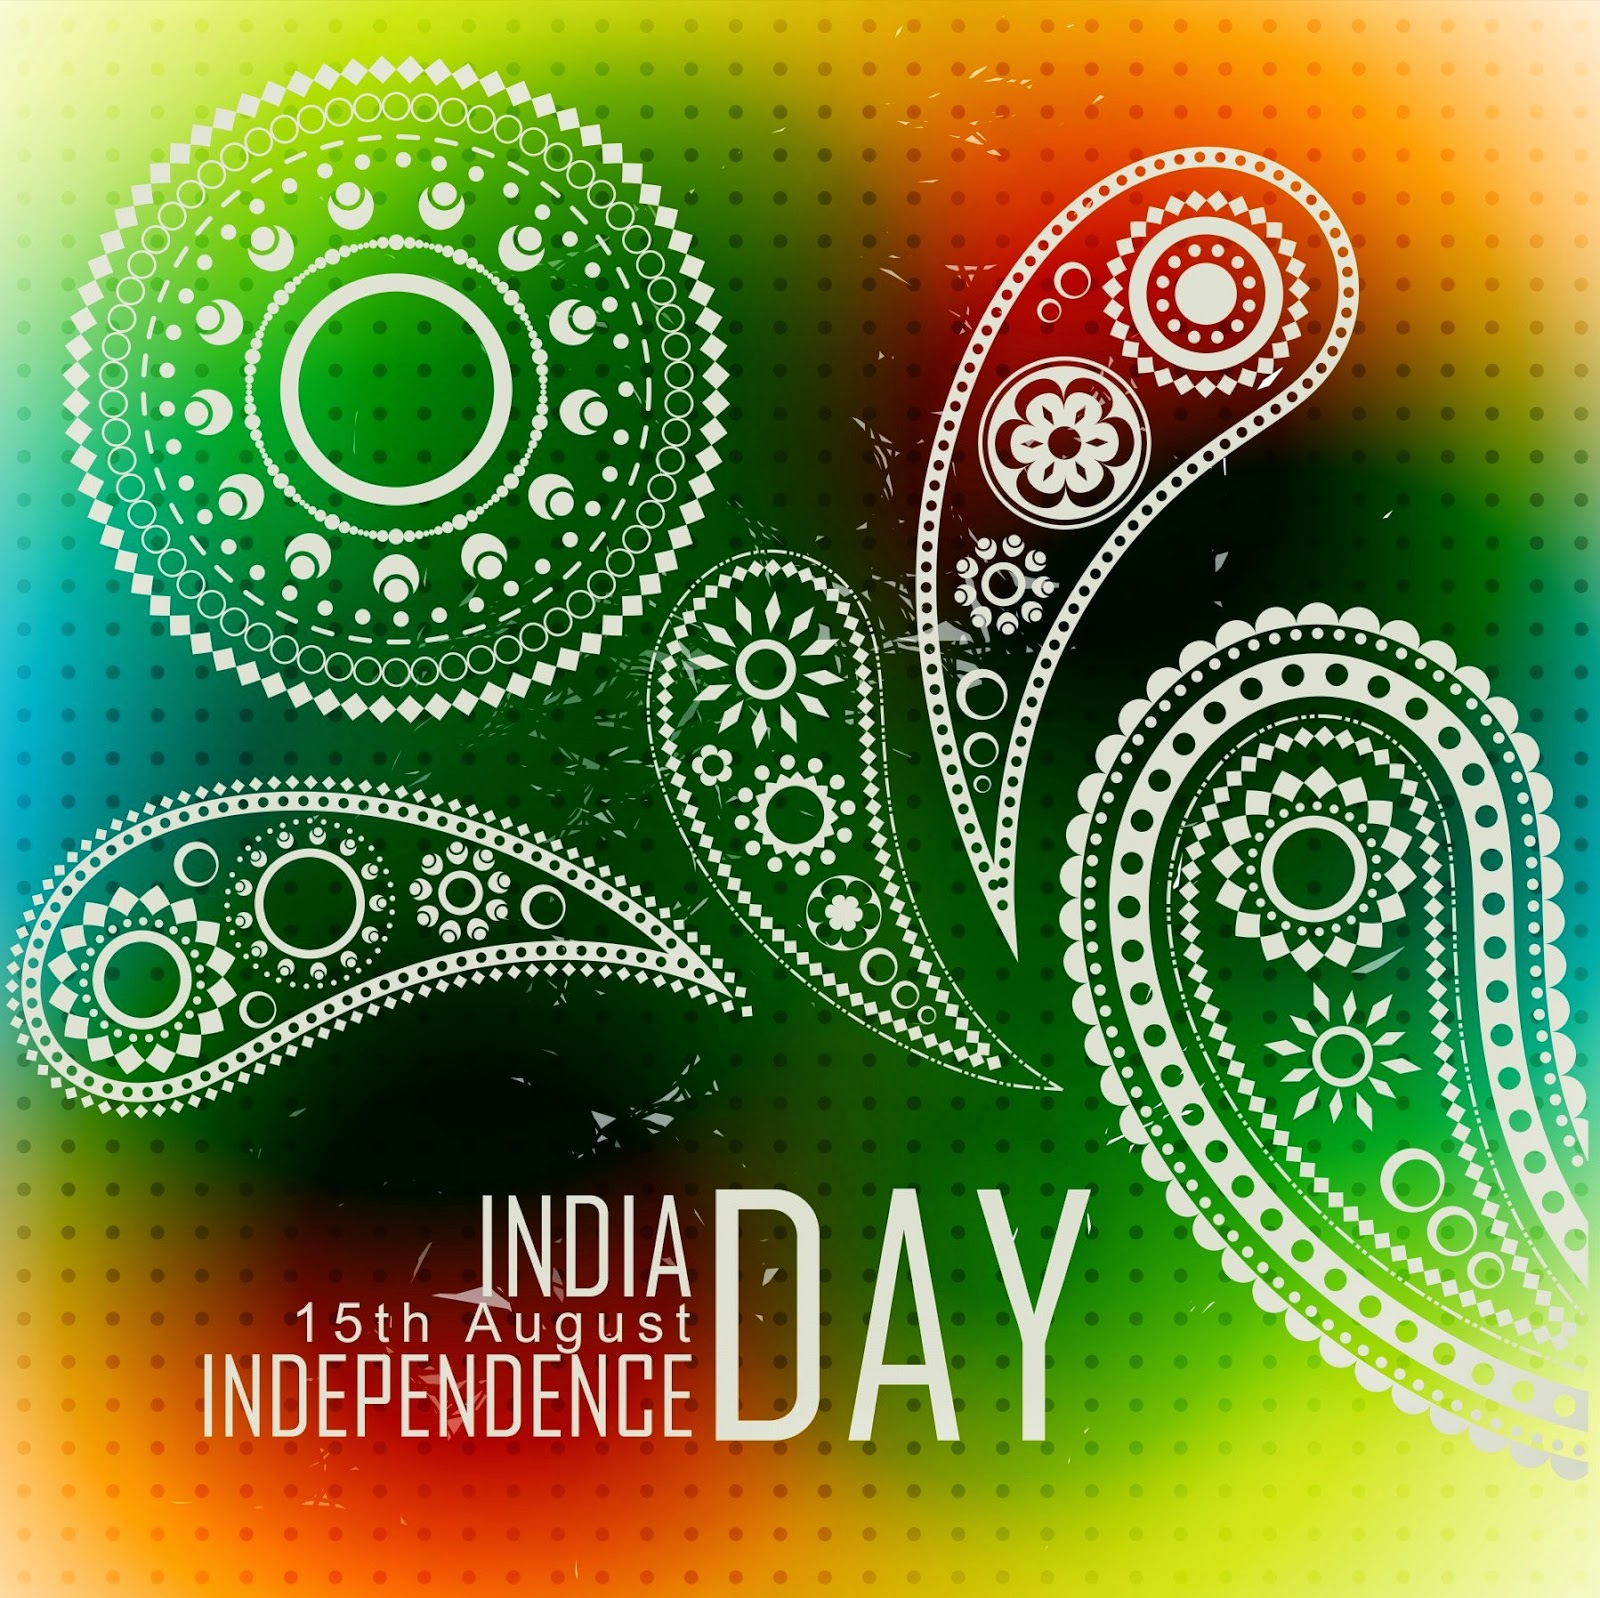 Happy independence day image sms 2014